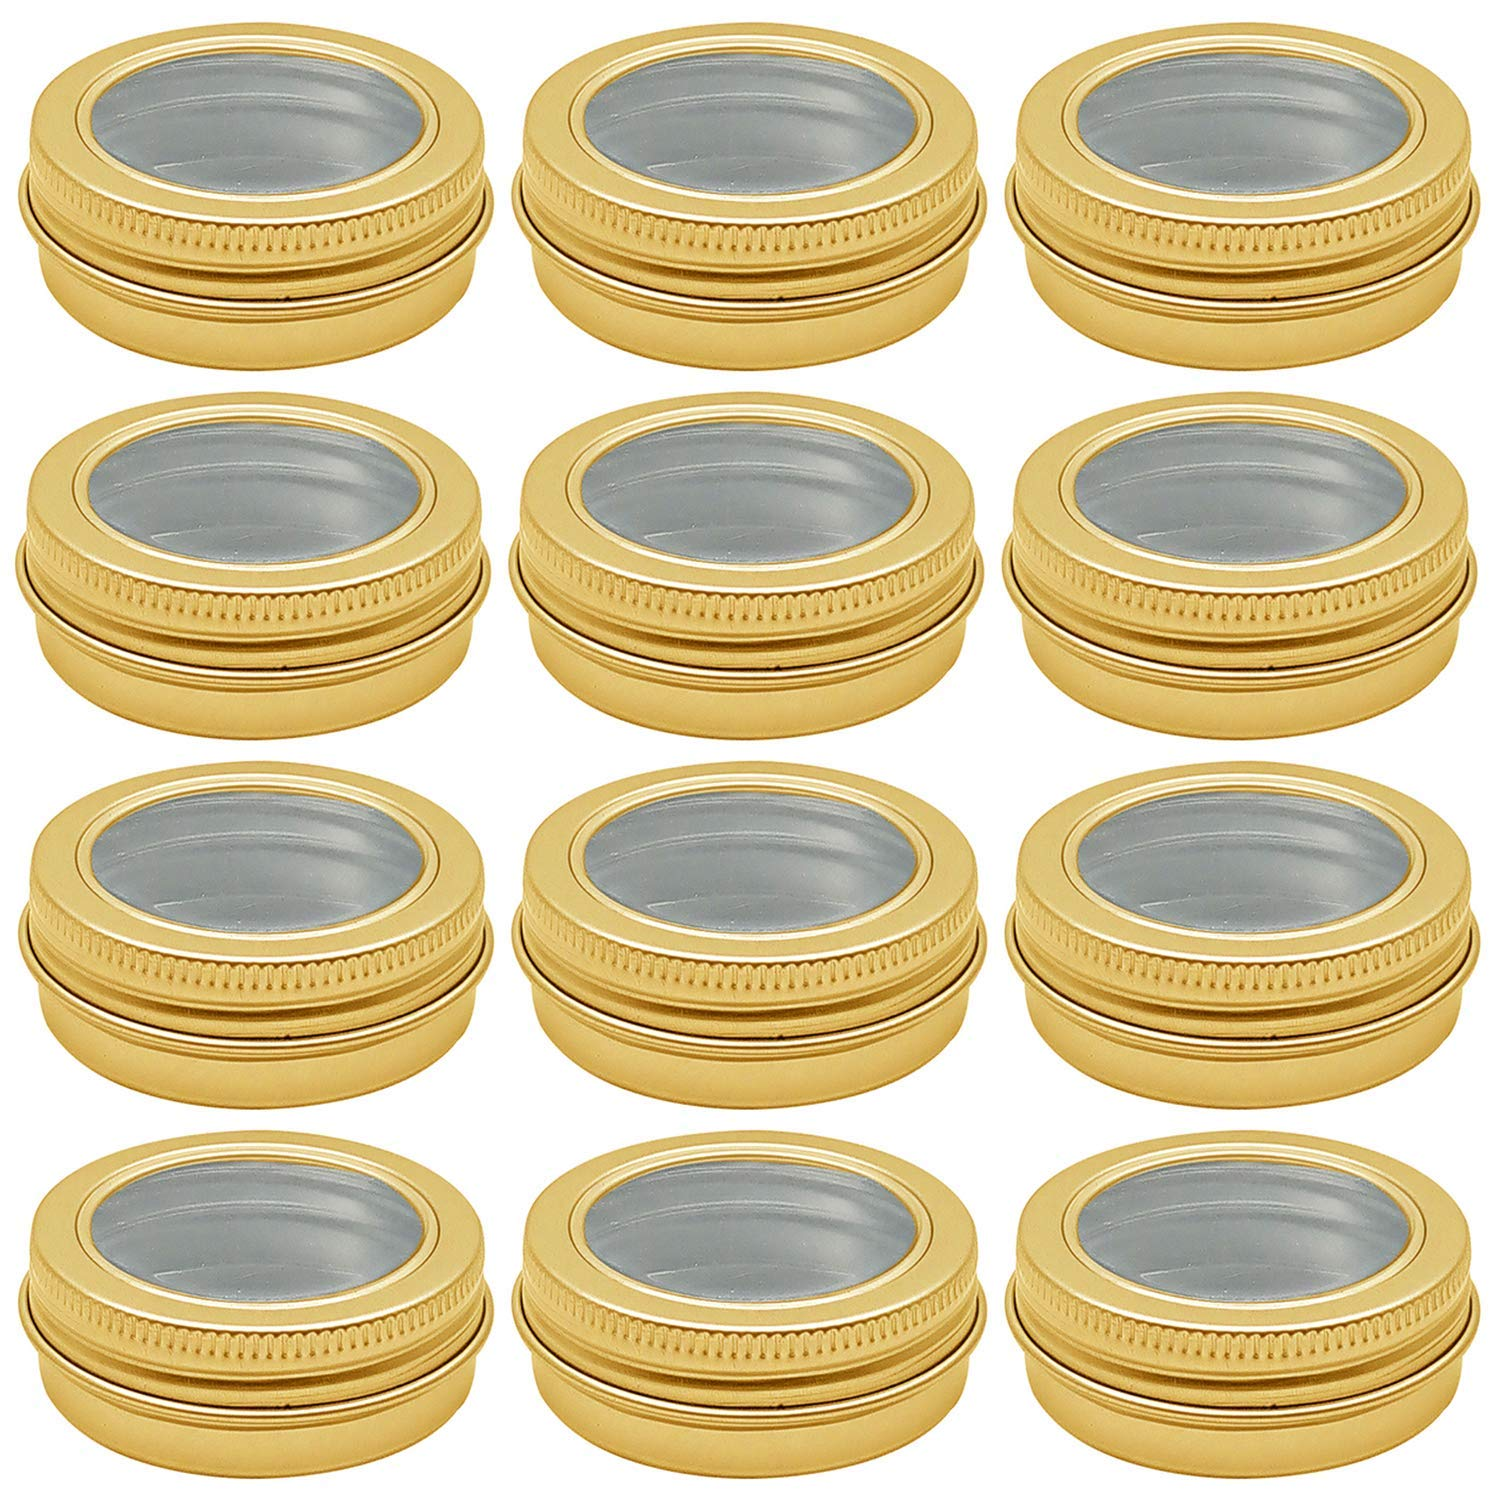 Hulless 2 oz Aluminum Tin Jar 60 ml Refillable Containers Clear Top Screw Lid Round Tin Container Bottle for Candle, Lip Balm, Salve, Eye Shadow, Powder, 12 Pcs Gold Color.